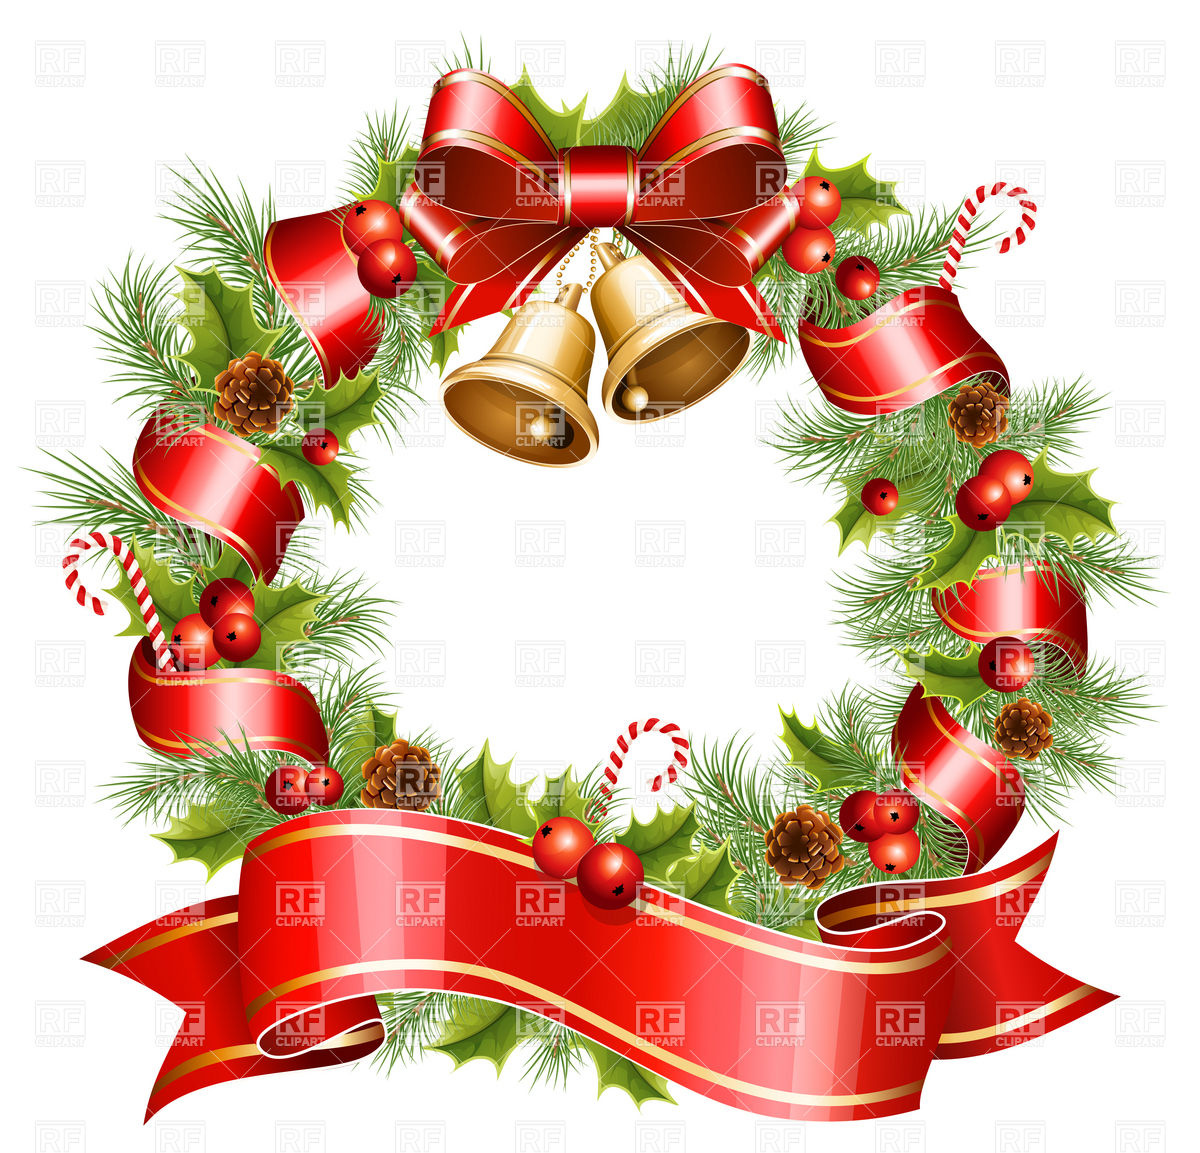 Christmas Wreath Clip Art Free Download